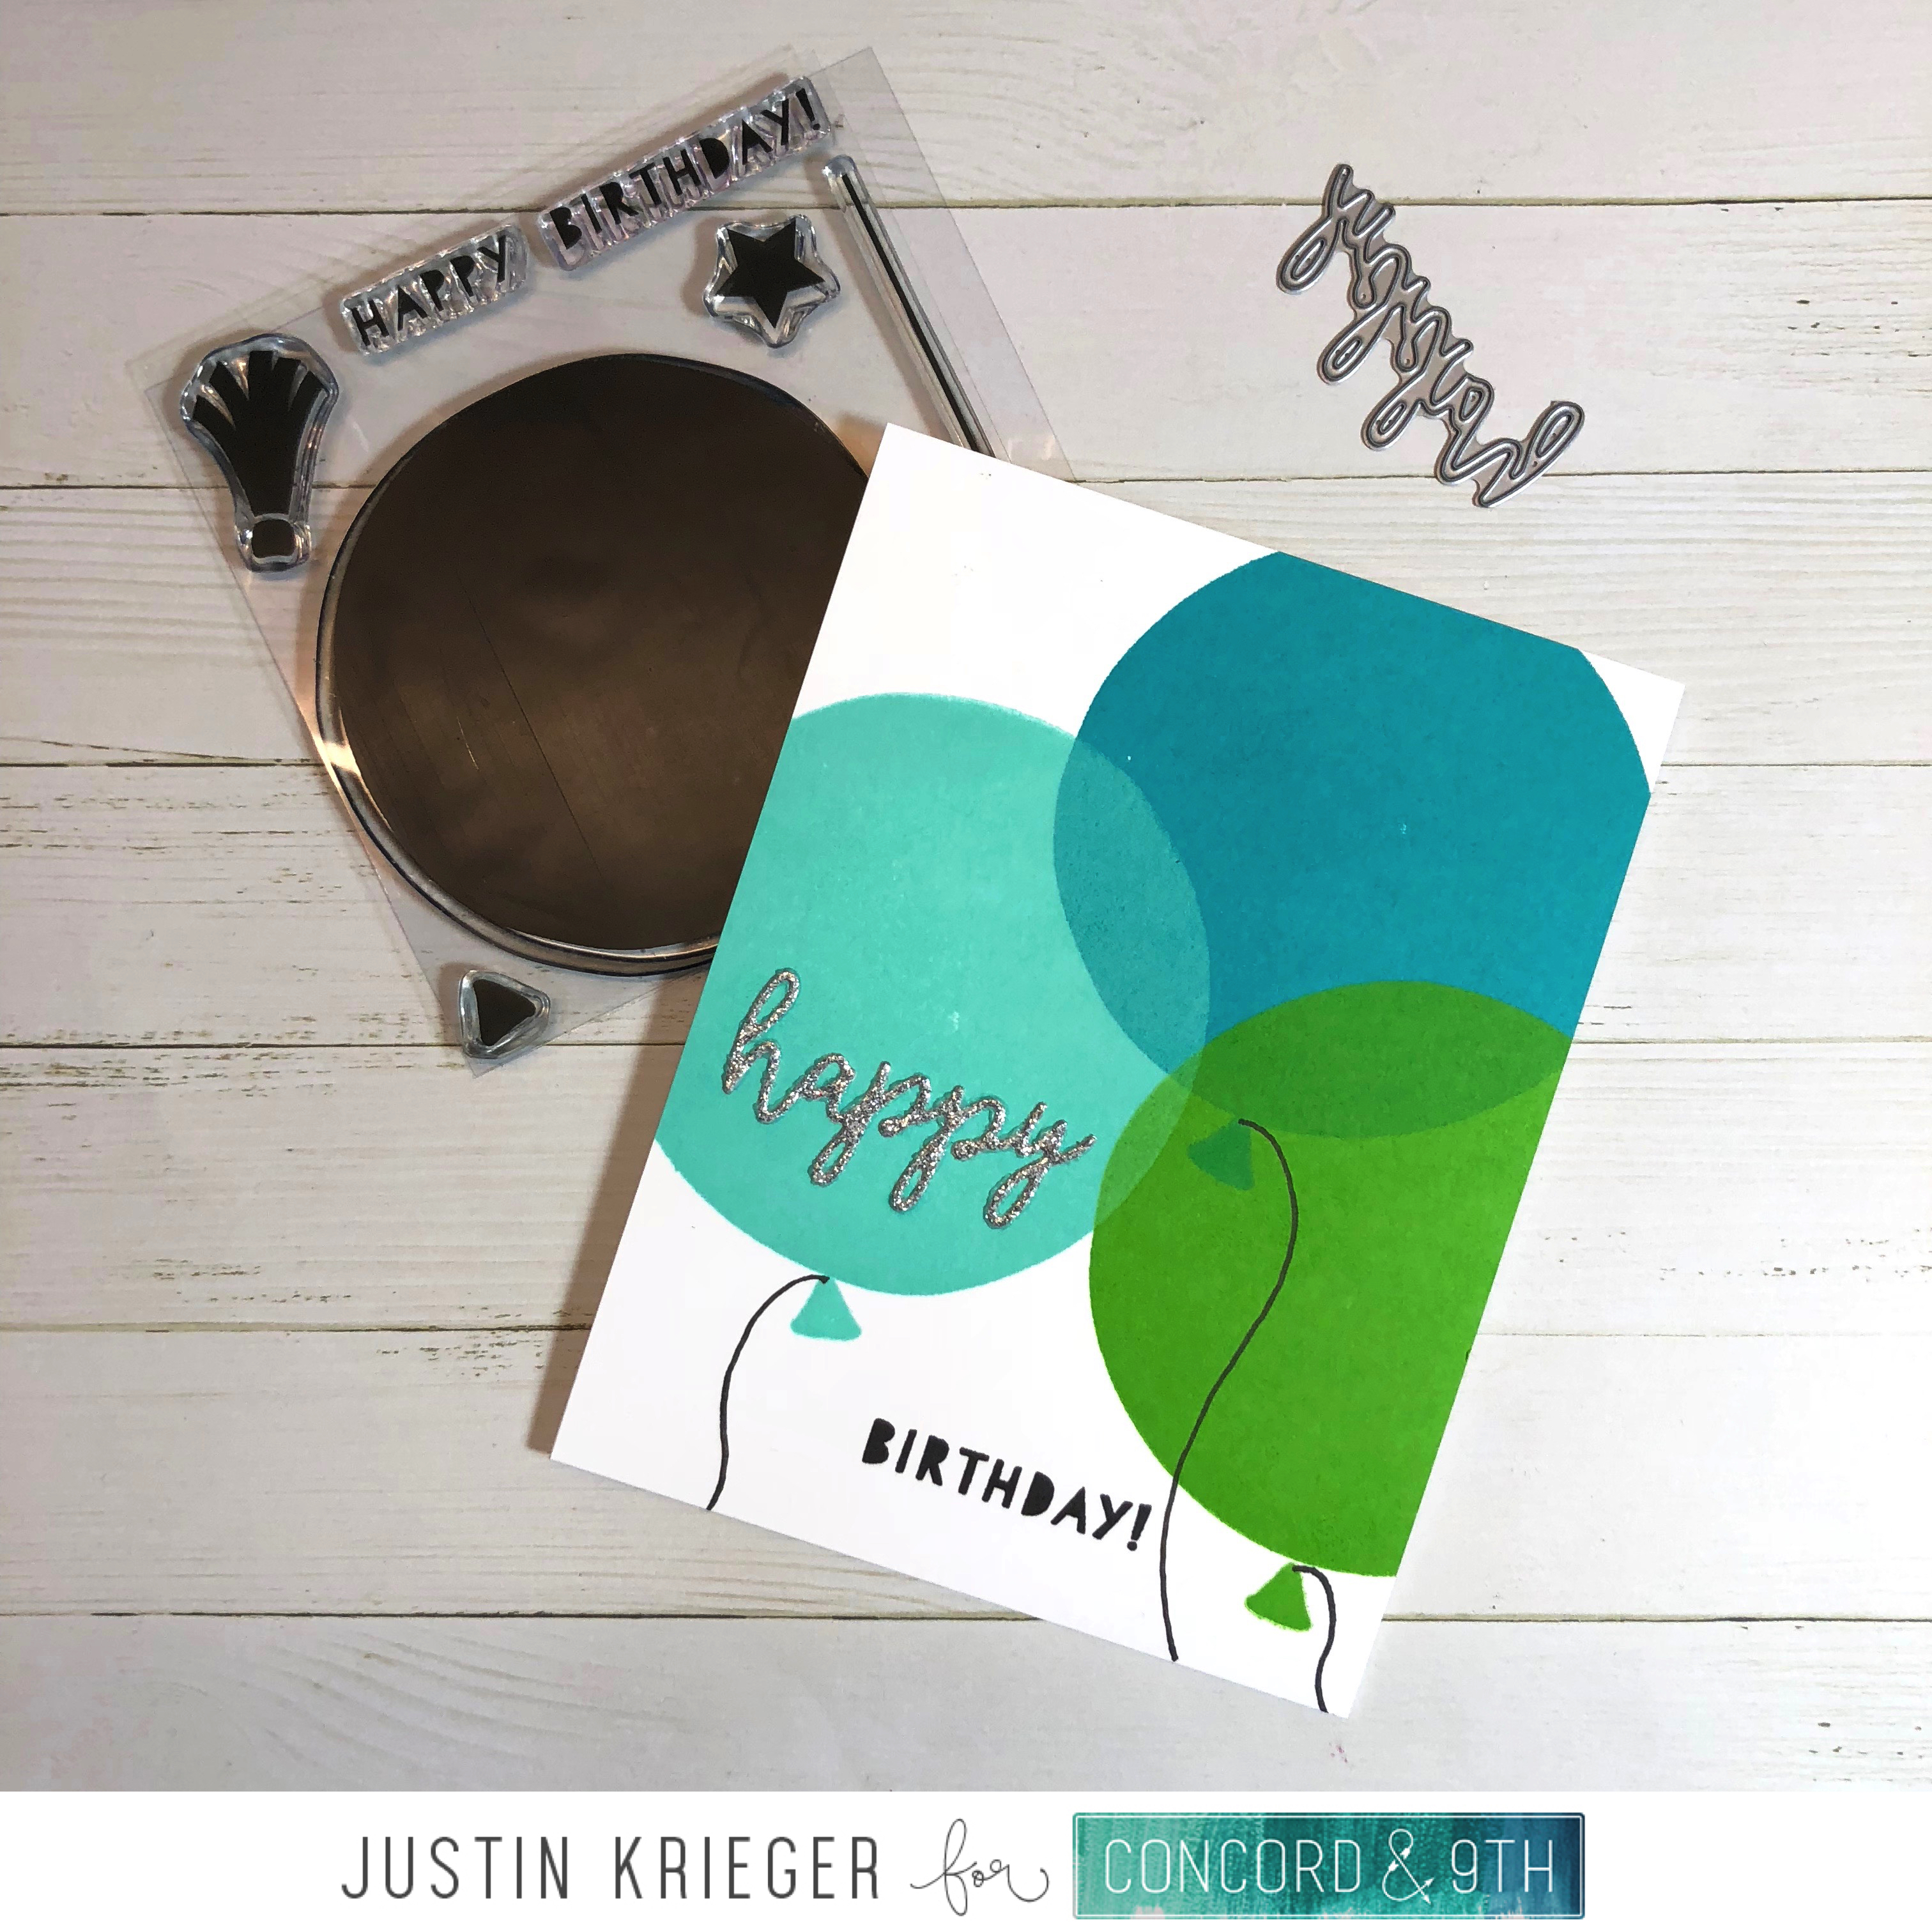 A Quick Simple And Fun Birthday Card I Love The Way That Light Blue Balloon Looks Like Its On Top Of All Others